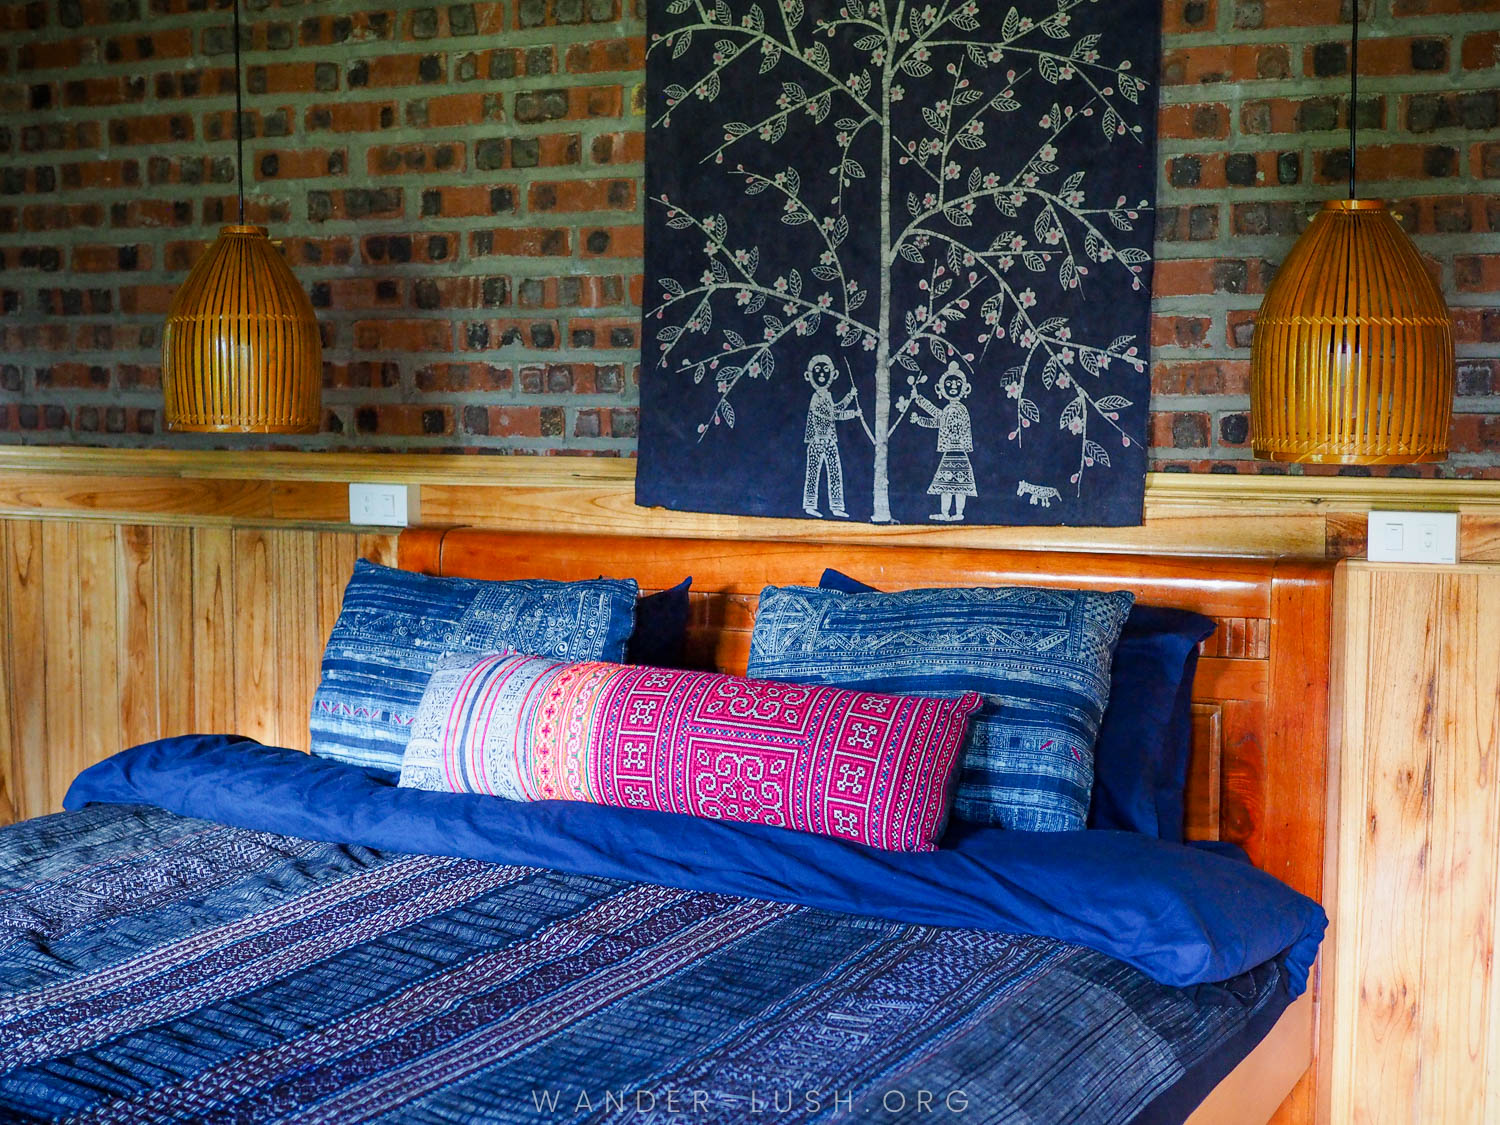 Looking to experience an authentic Hmong homestay in Sapa, Vietnam? Indigo  Snail Boutique Hmong